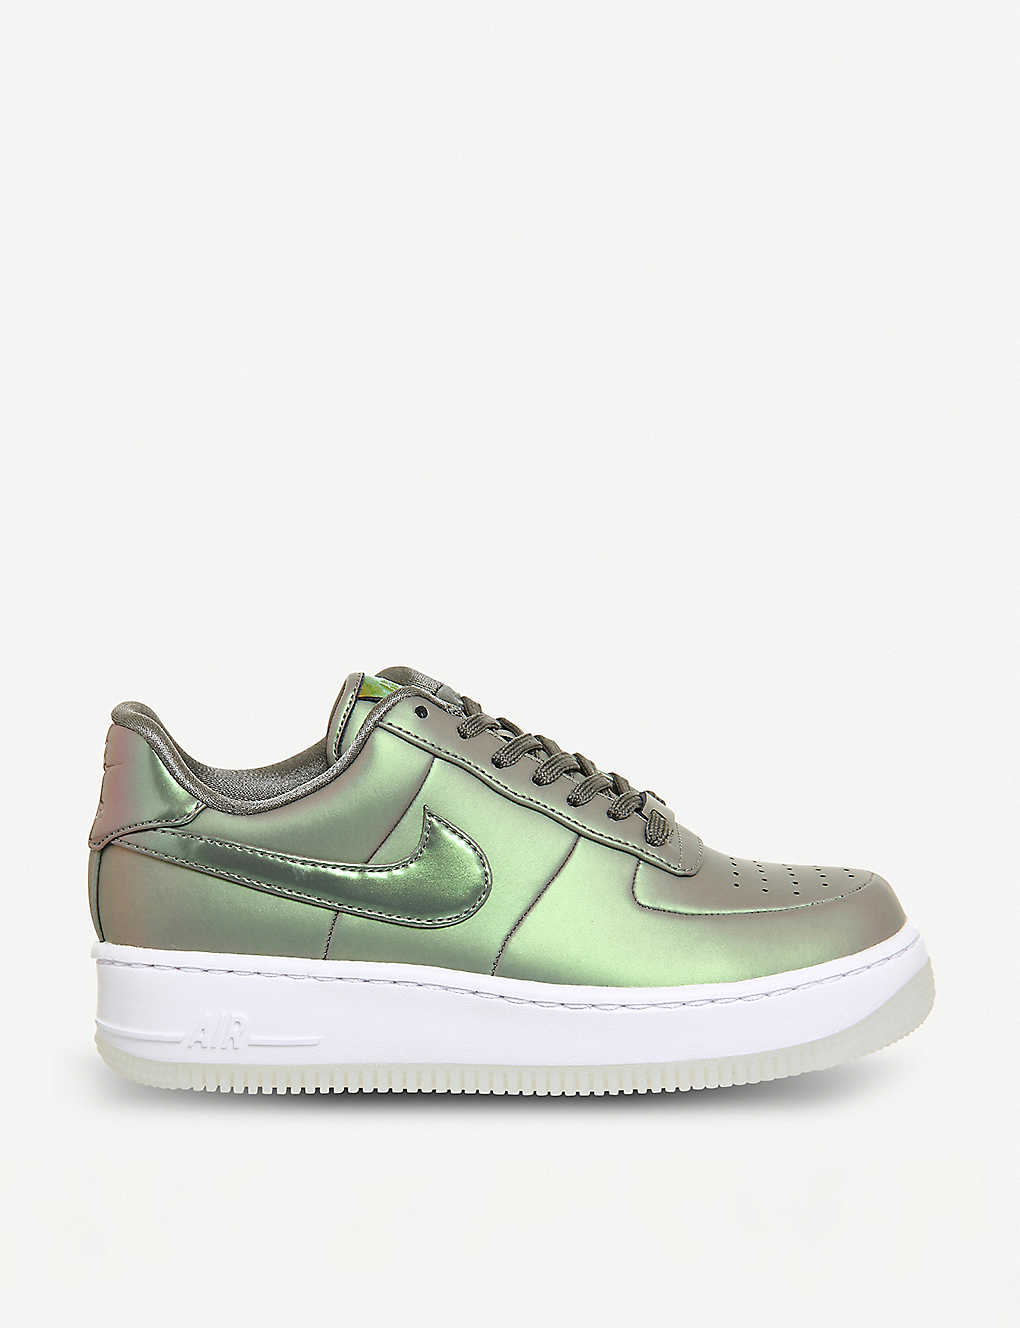 5e89d89c87b NIKE - Air Force 1 Upstep iridescent metallic leather trainers ...